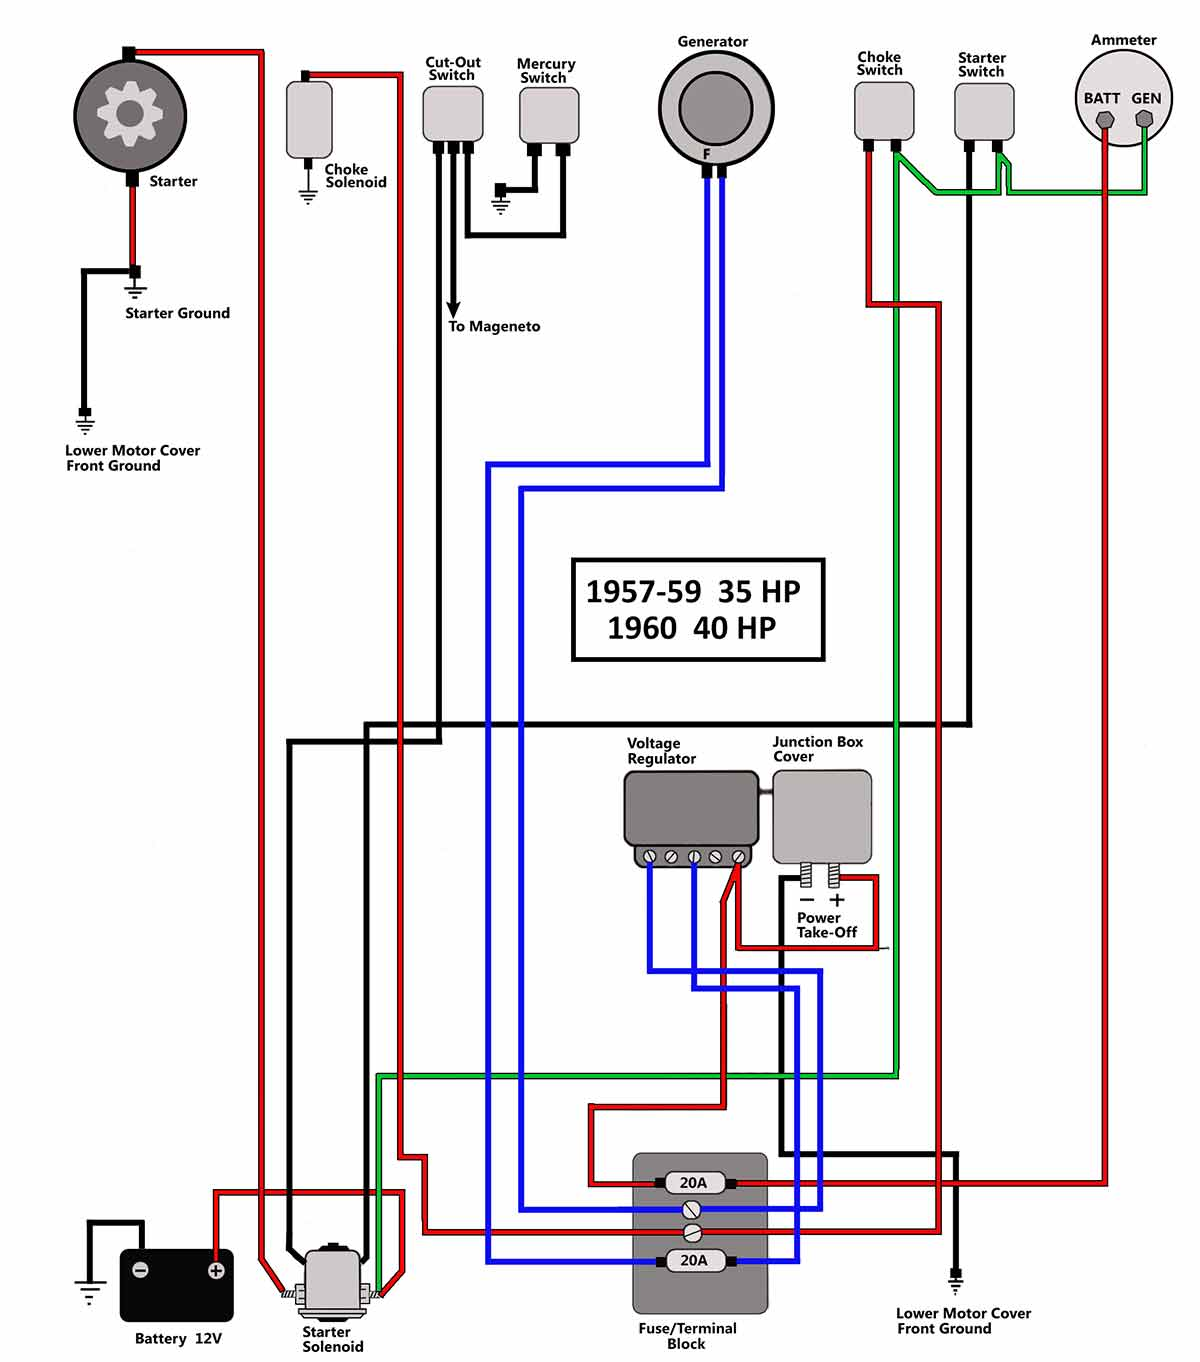 B8C7B Evinrude Motor Switch Wiring Diagram | Digital Resources on friendship bracelet diagrams, sincgars radio configurations diagrams, honda motorcycle repair diagrams, electronic circuit diagrams, pinout diagrams, switch diagrams, troubleshooting diagrams, internet of things diagrams, engine diagrams, led circuit diagrams, hvac diagrams, lighting diagrams, gmc fuse box diagrams, series and parallel circuits diagrams, electrical diagrams, battery diagrams, smart car diagrams, motor diagrams, transformer diagrams,